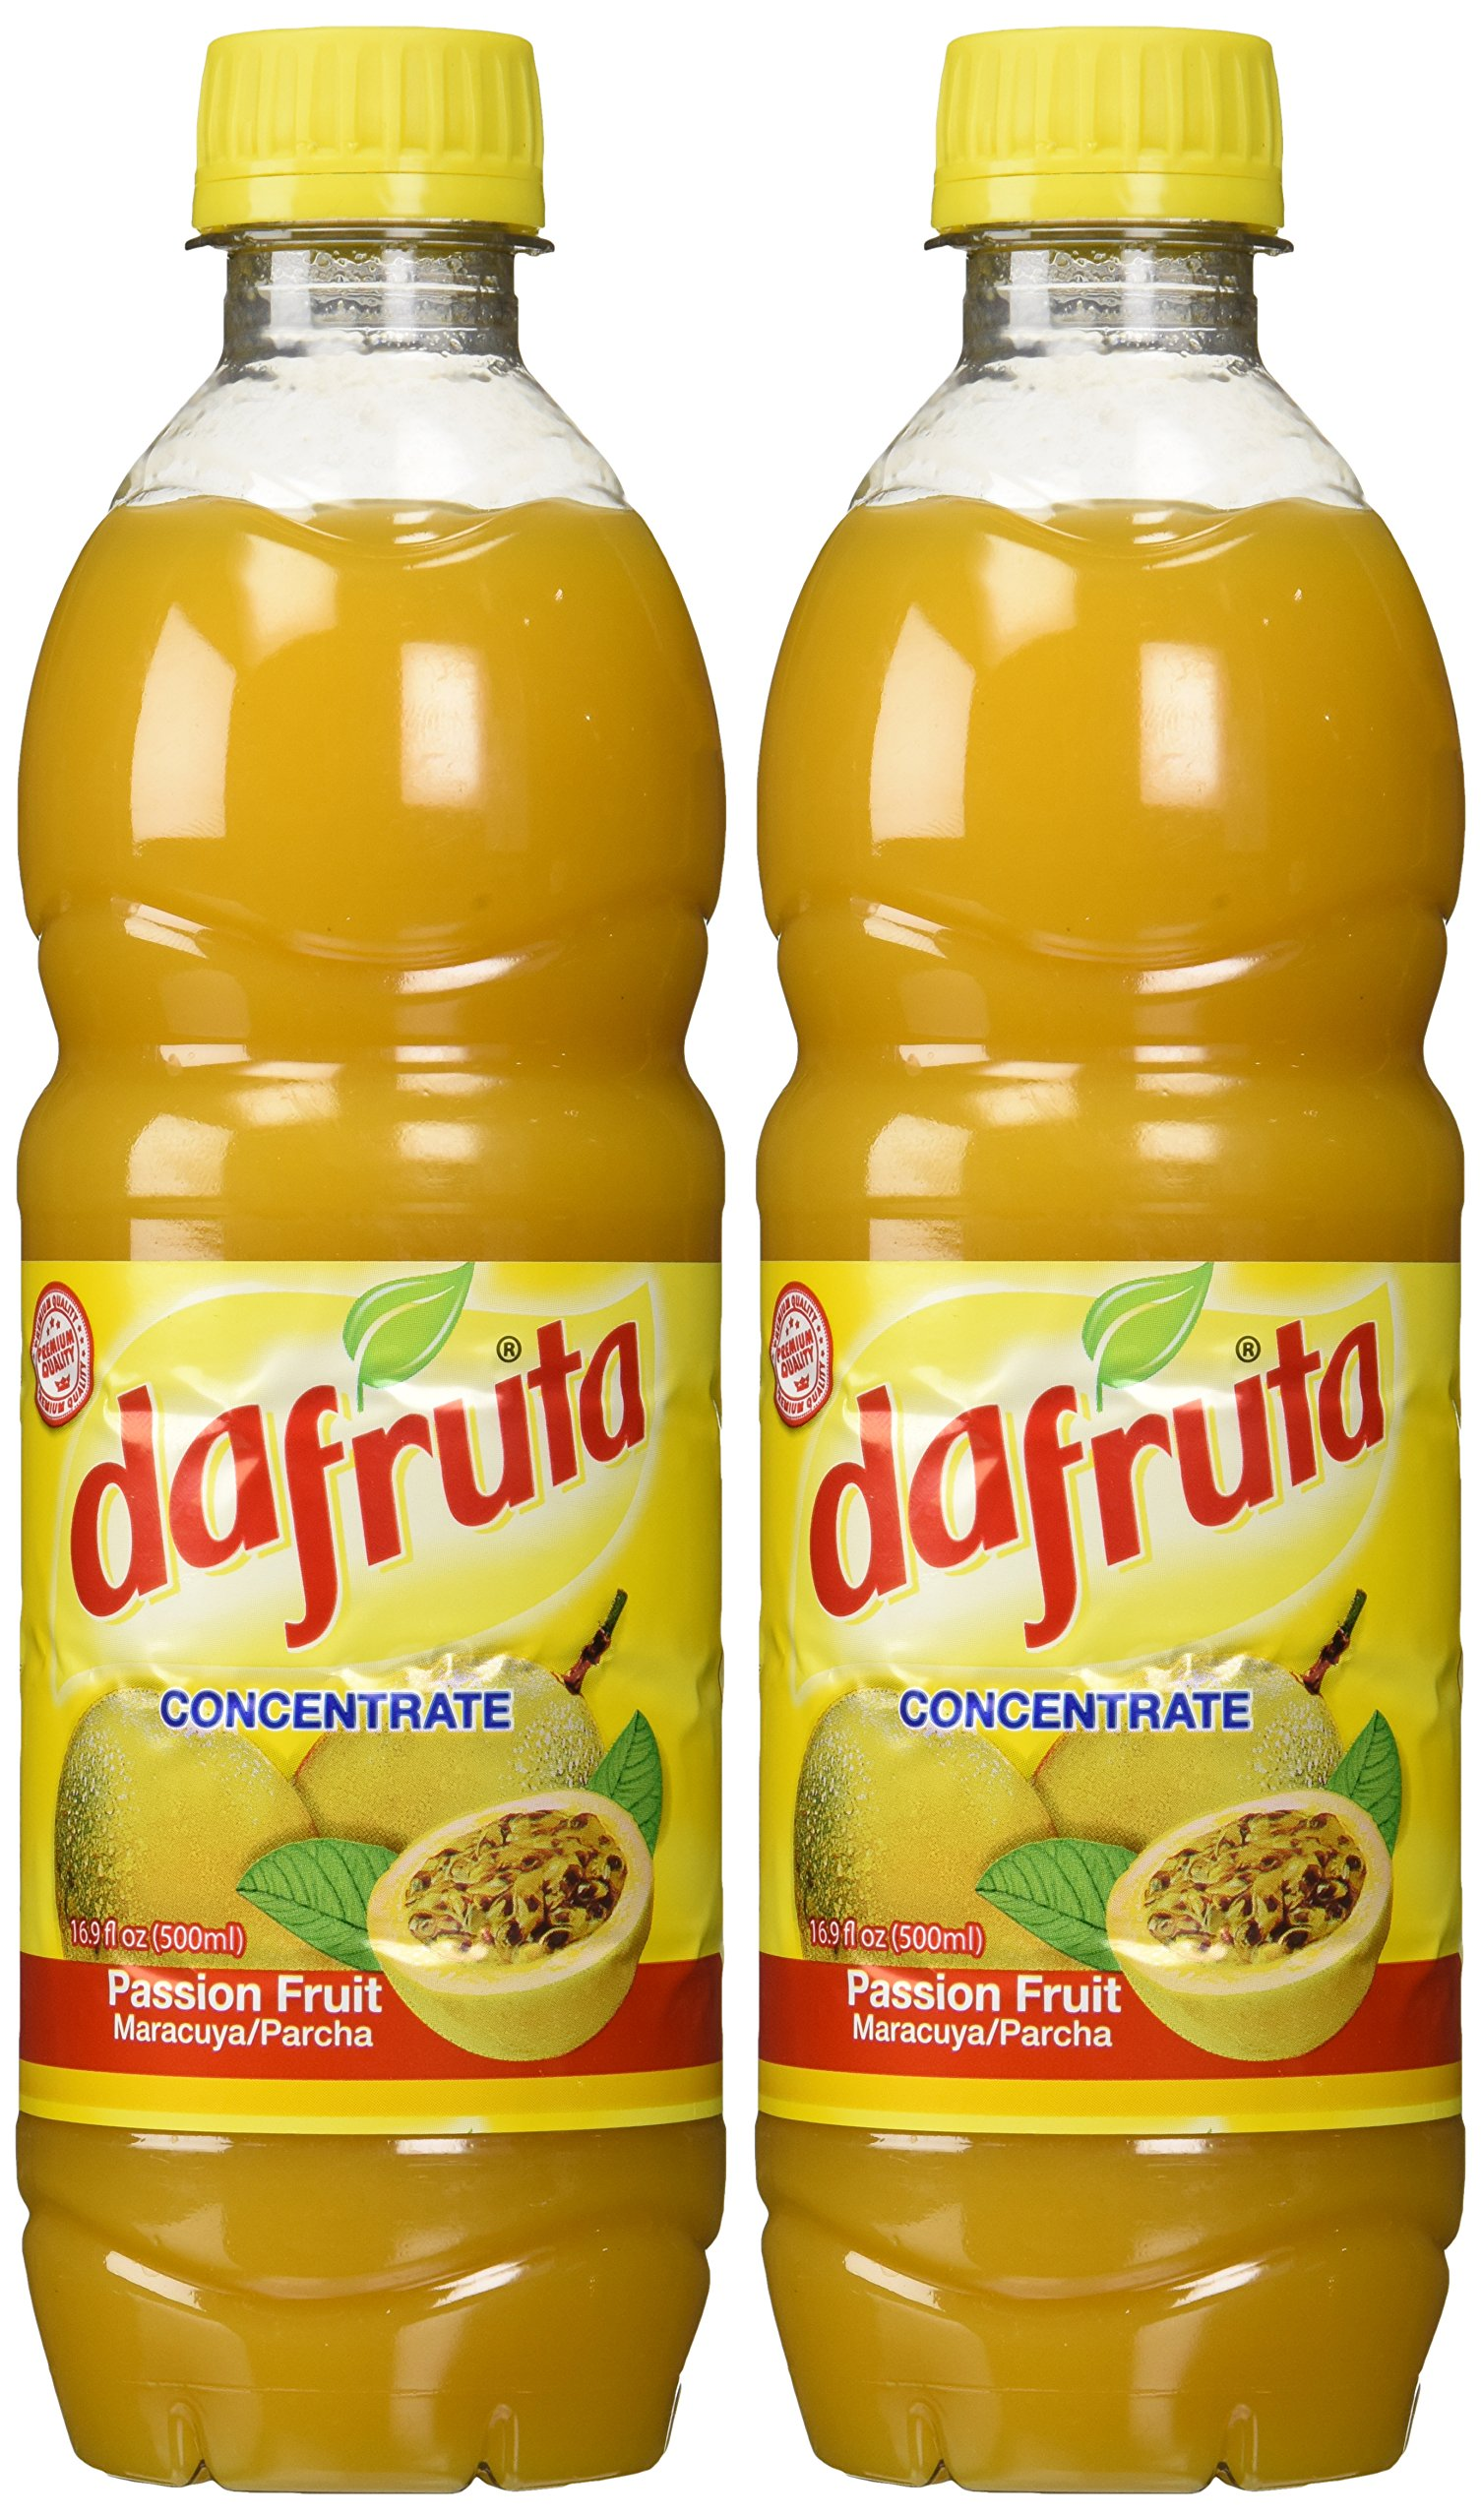 Dafruta Passion Fruit Juice Concentrate - 16.9 FL.Oz | Suco Concentrado de Maracujá Dafruta